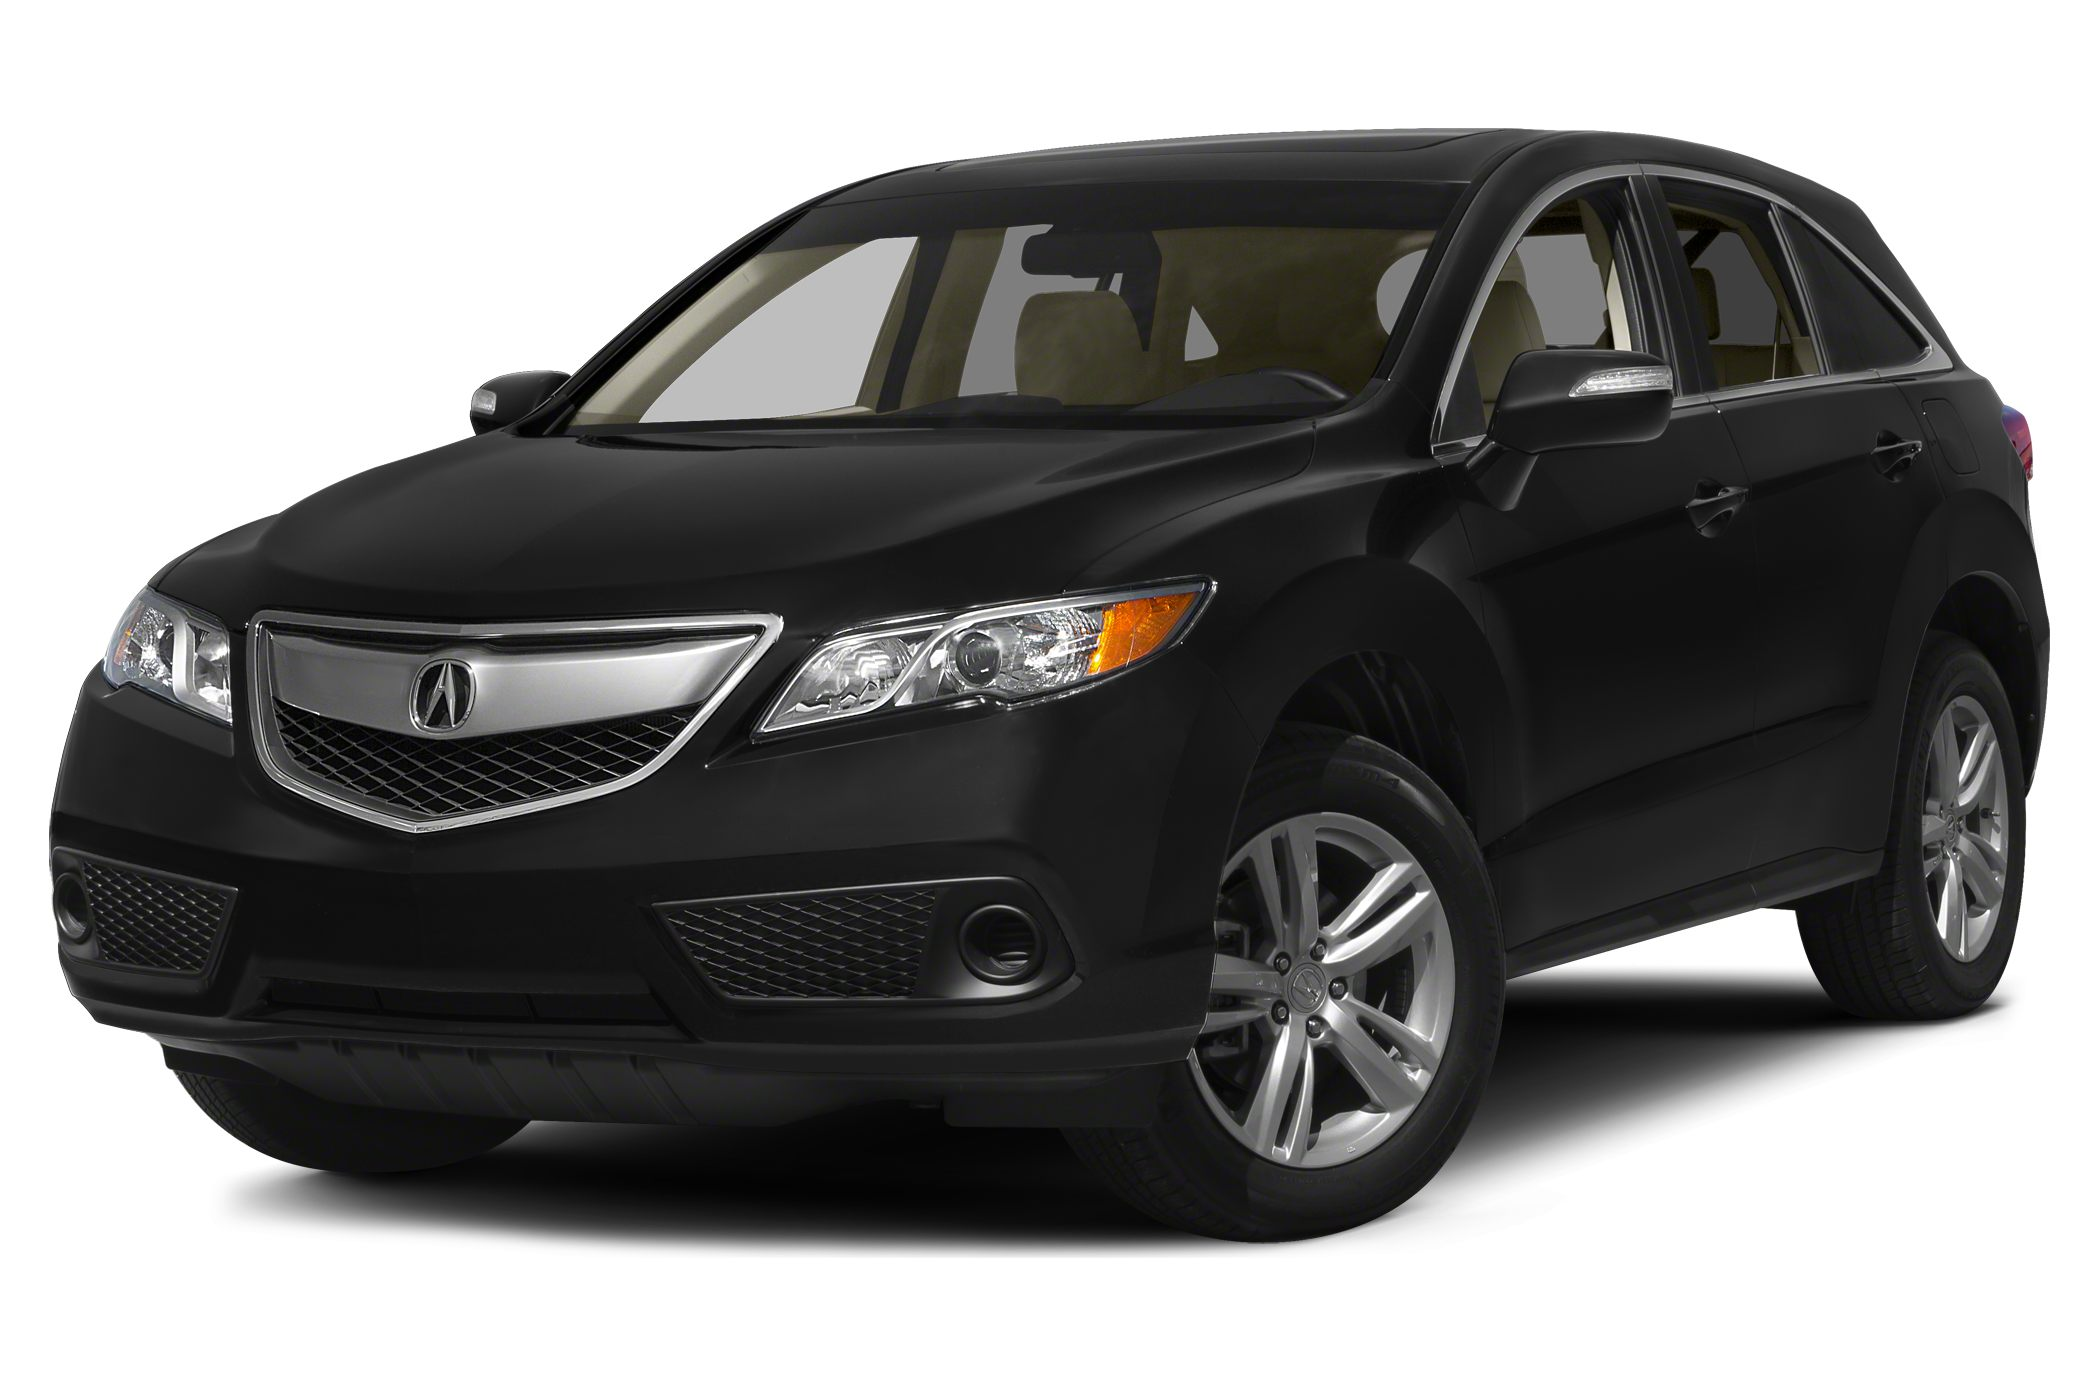 2015 Acura RDX Base SUV for sale in Columbus for $41,115 with 51 miles.